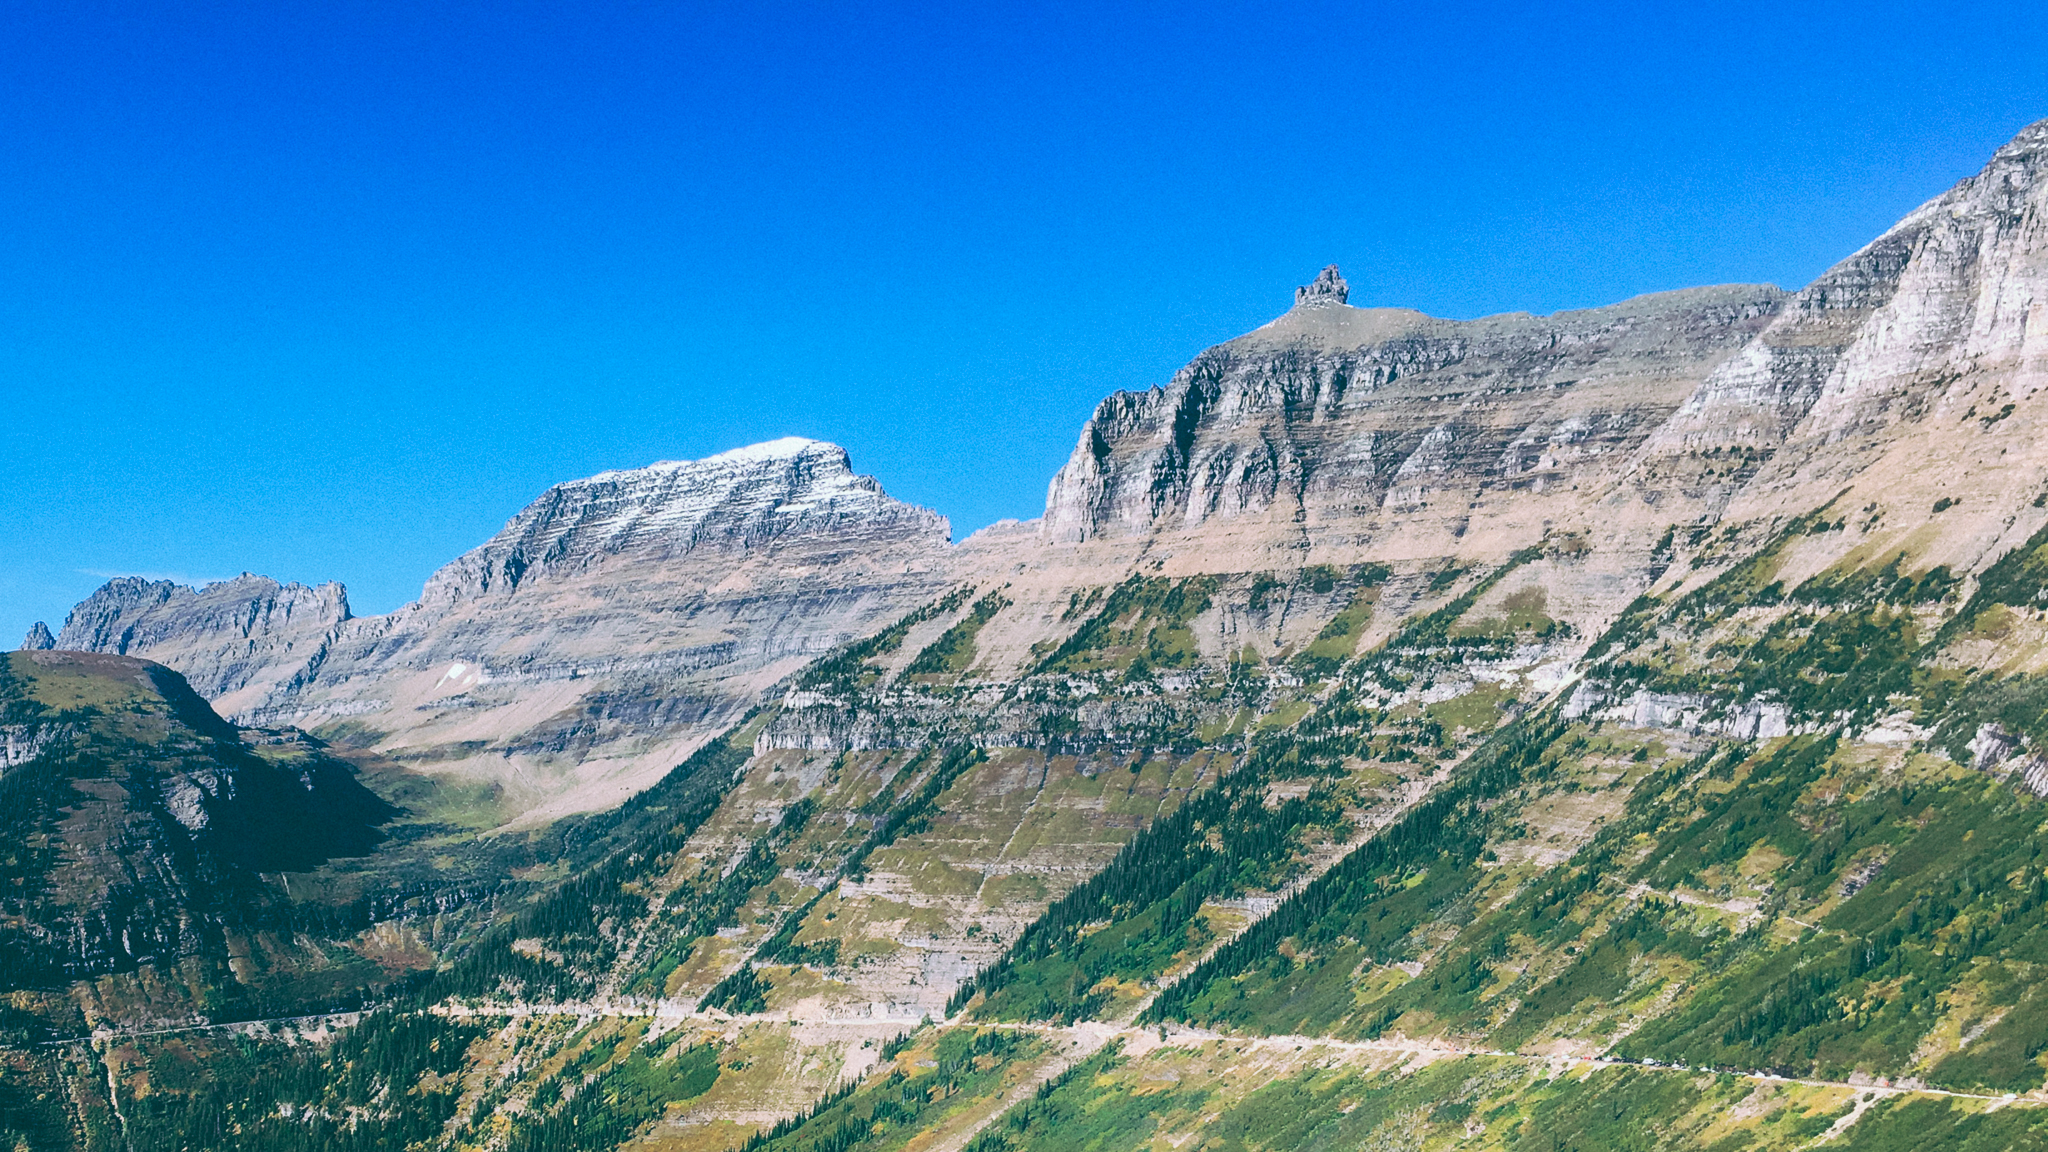 glacier-national-park-1629